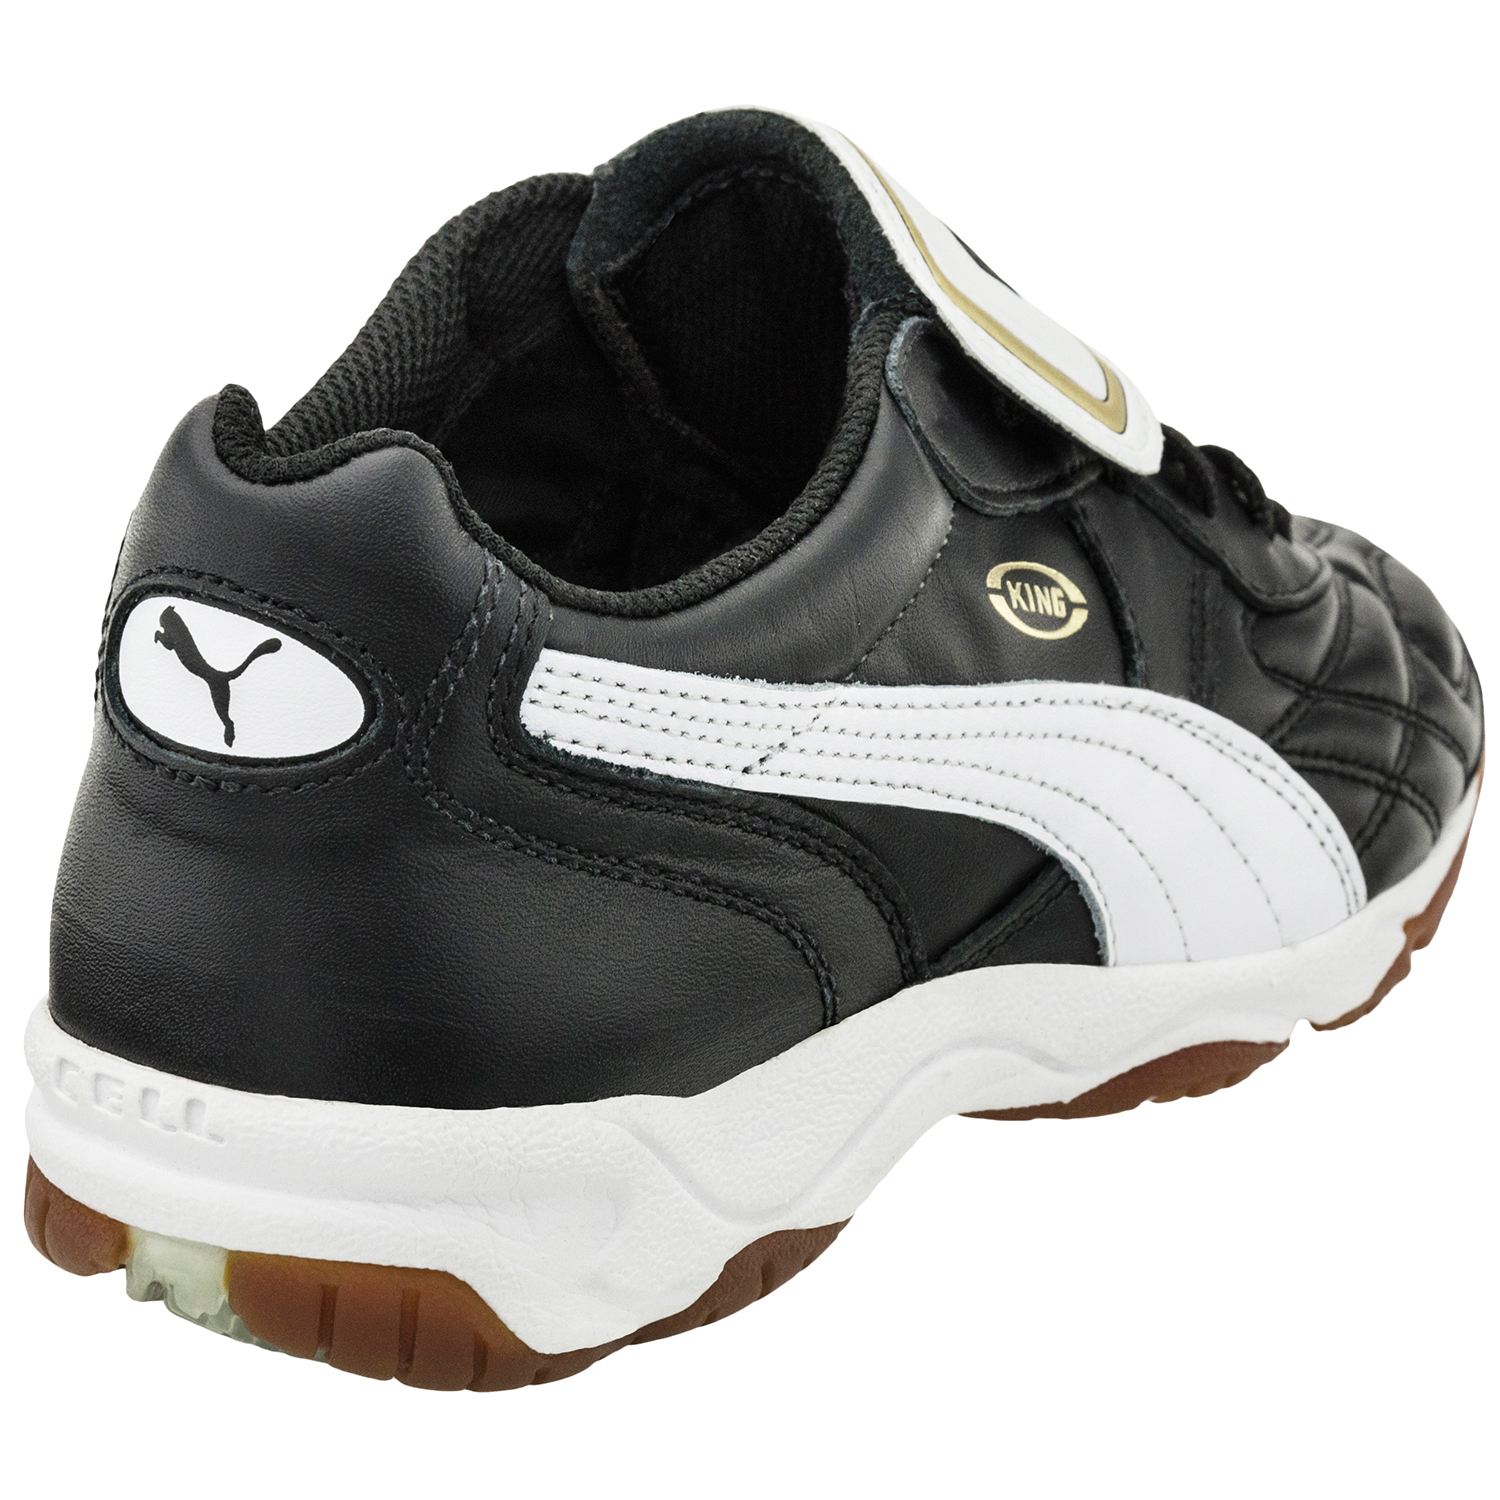 Puma King Indoor (Black)  9921adca3